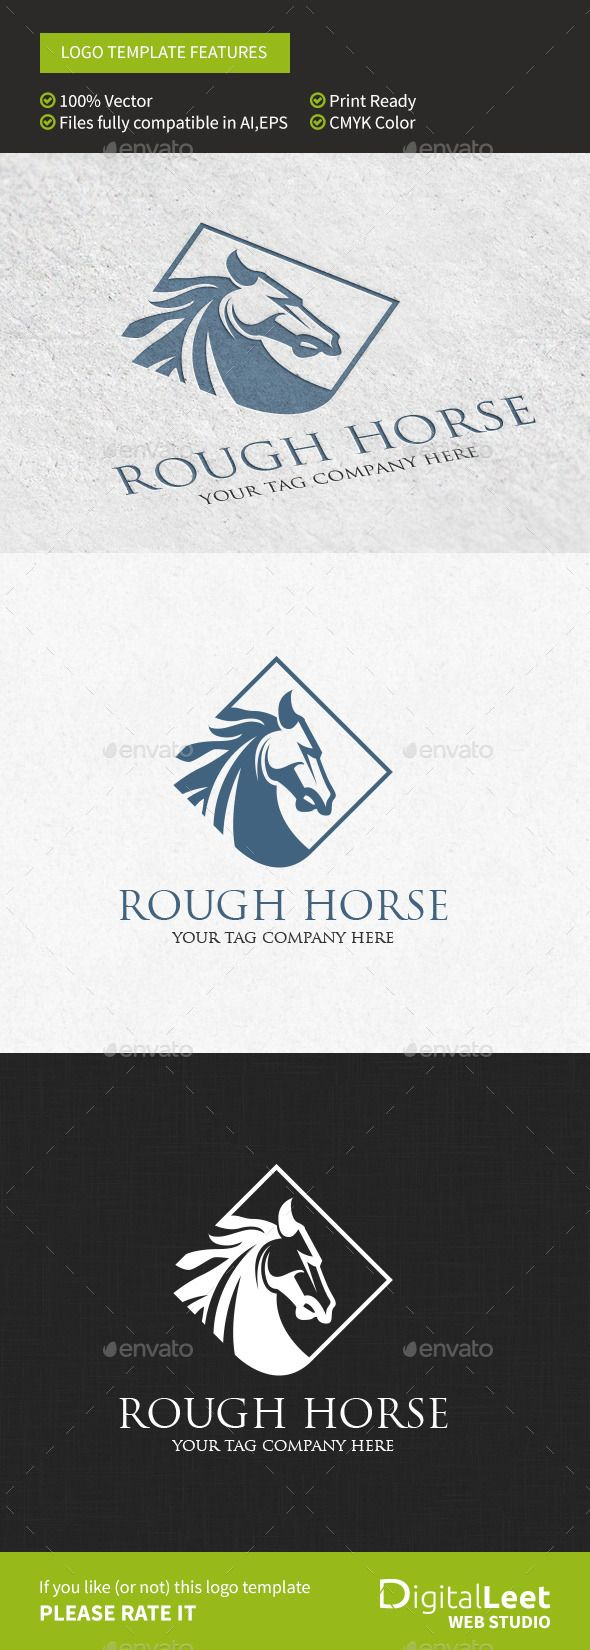 Rough Horse  Logo Design Template Vector #logotype Download it here: http://graphicriver.net/item/rough-horse-logo-template/8956109?s_rank=1276?ref=nexion